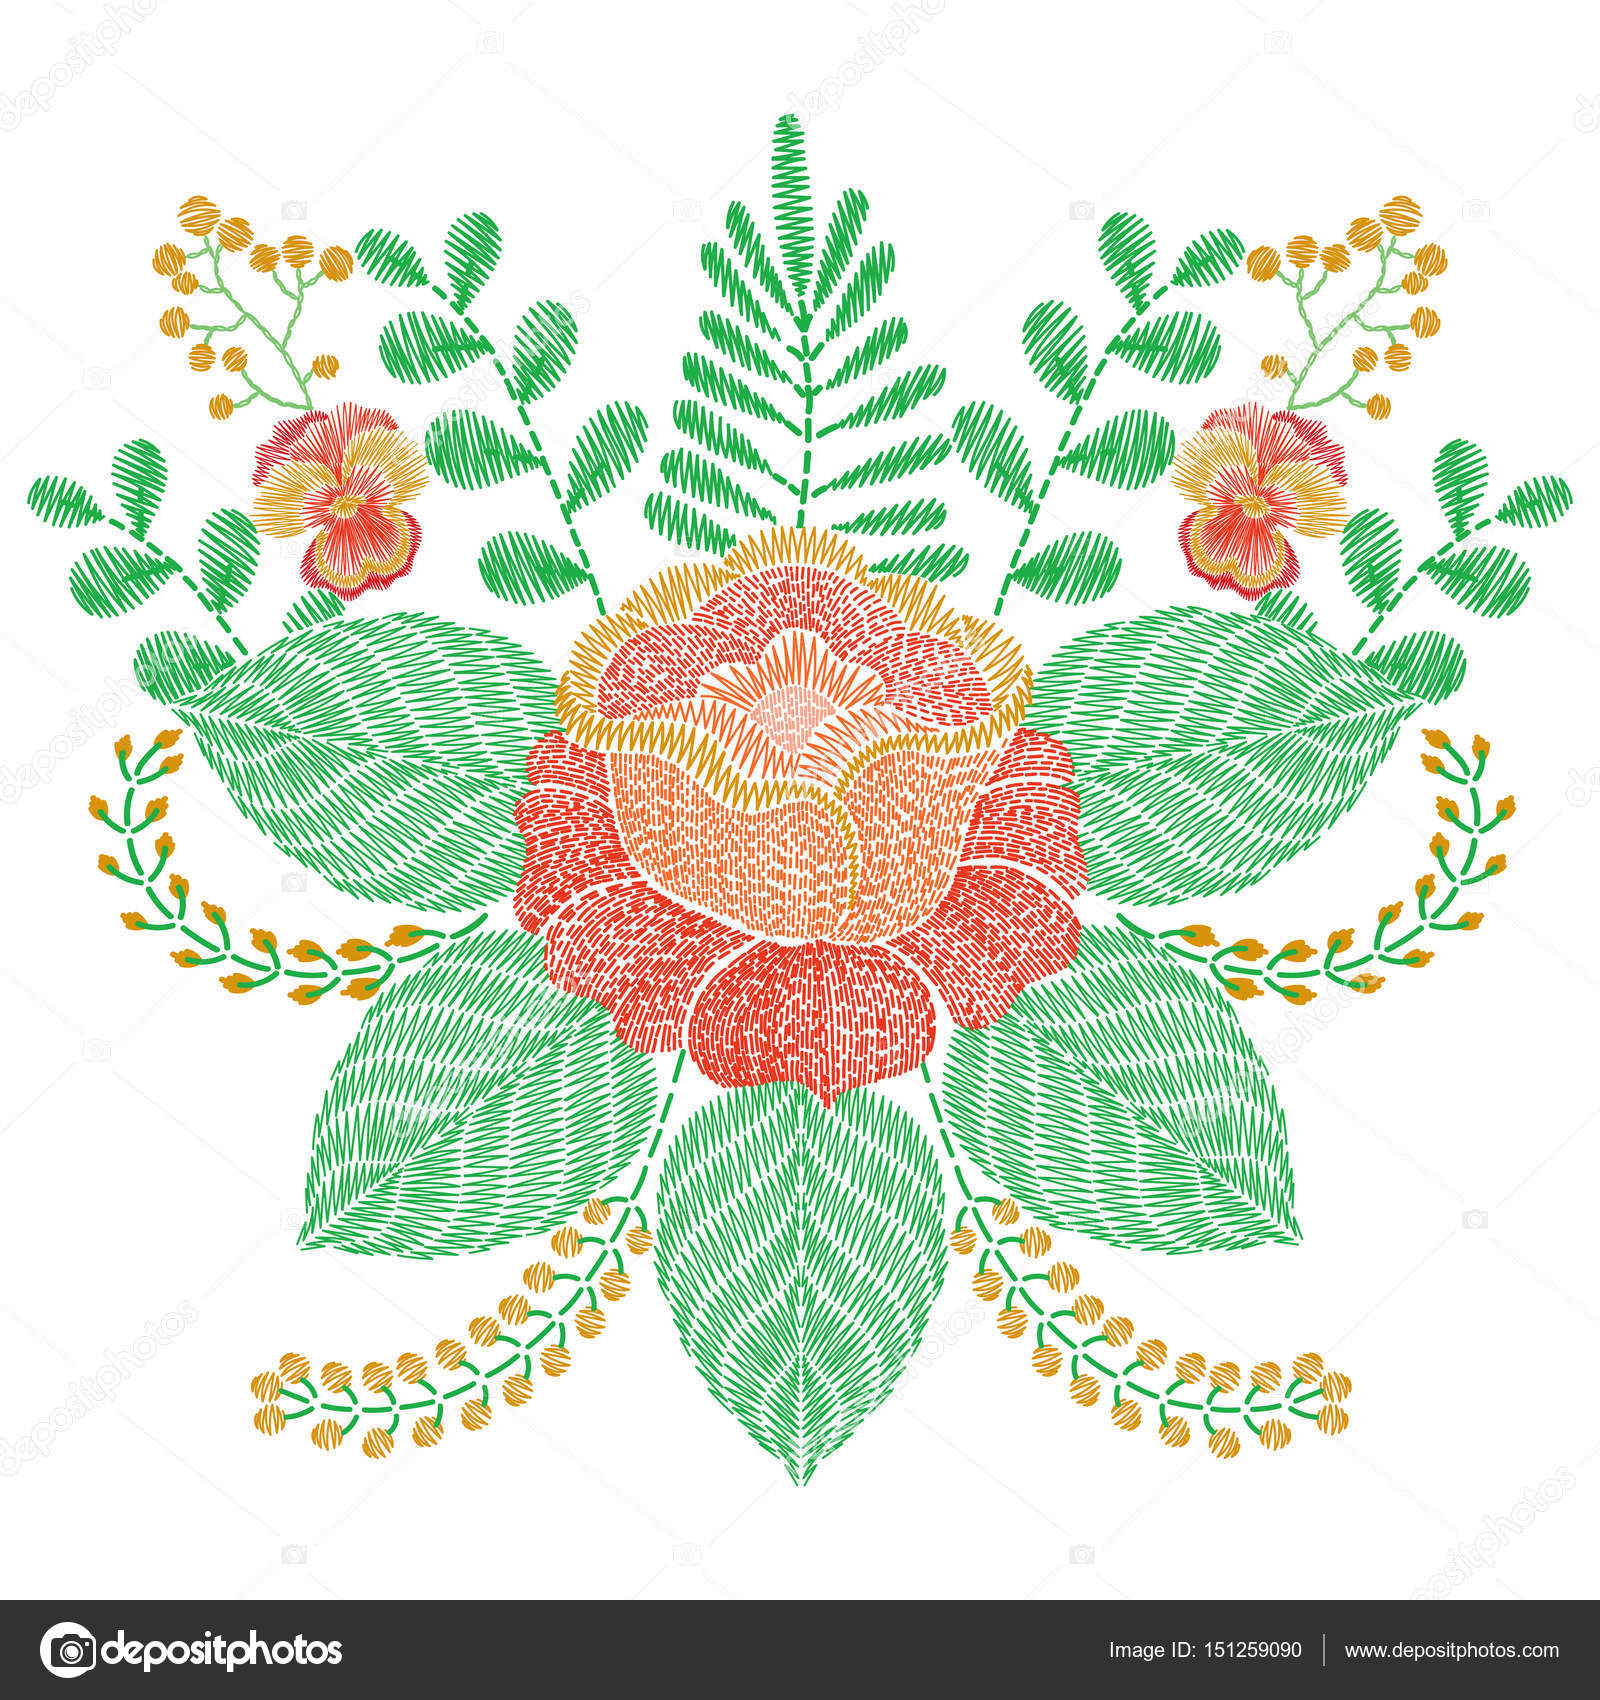 Embroidery Stitches With Orange Rose Flowers Grass Branches V